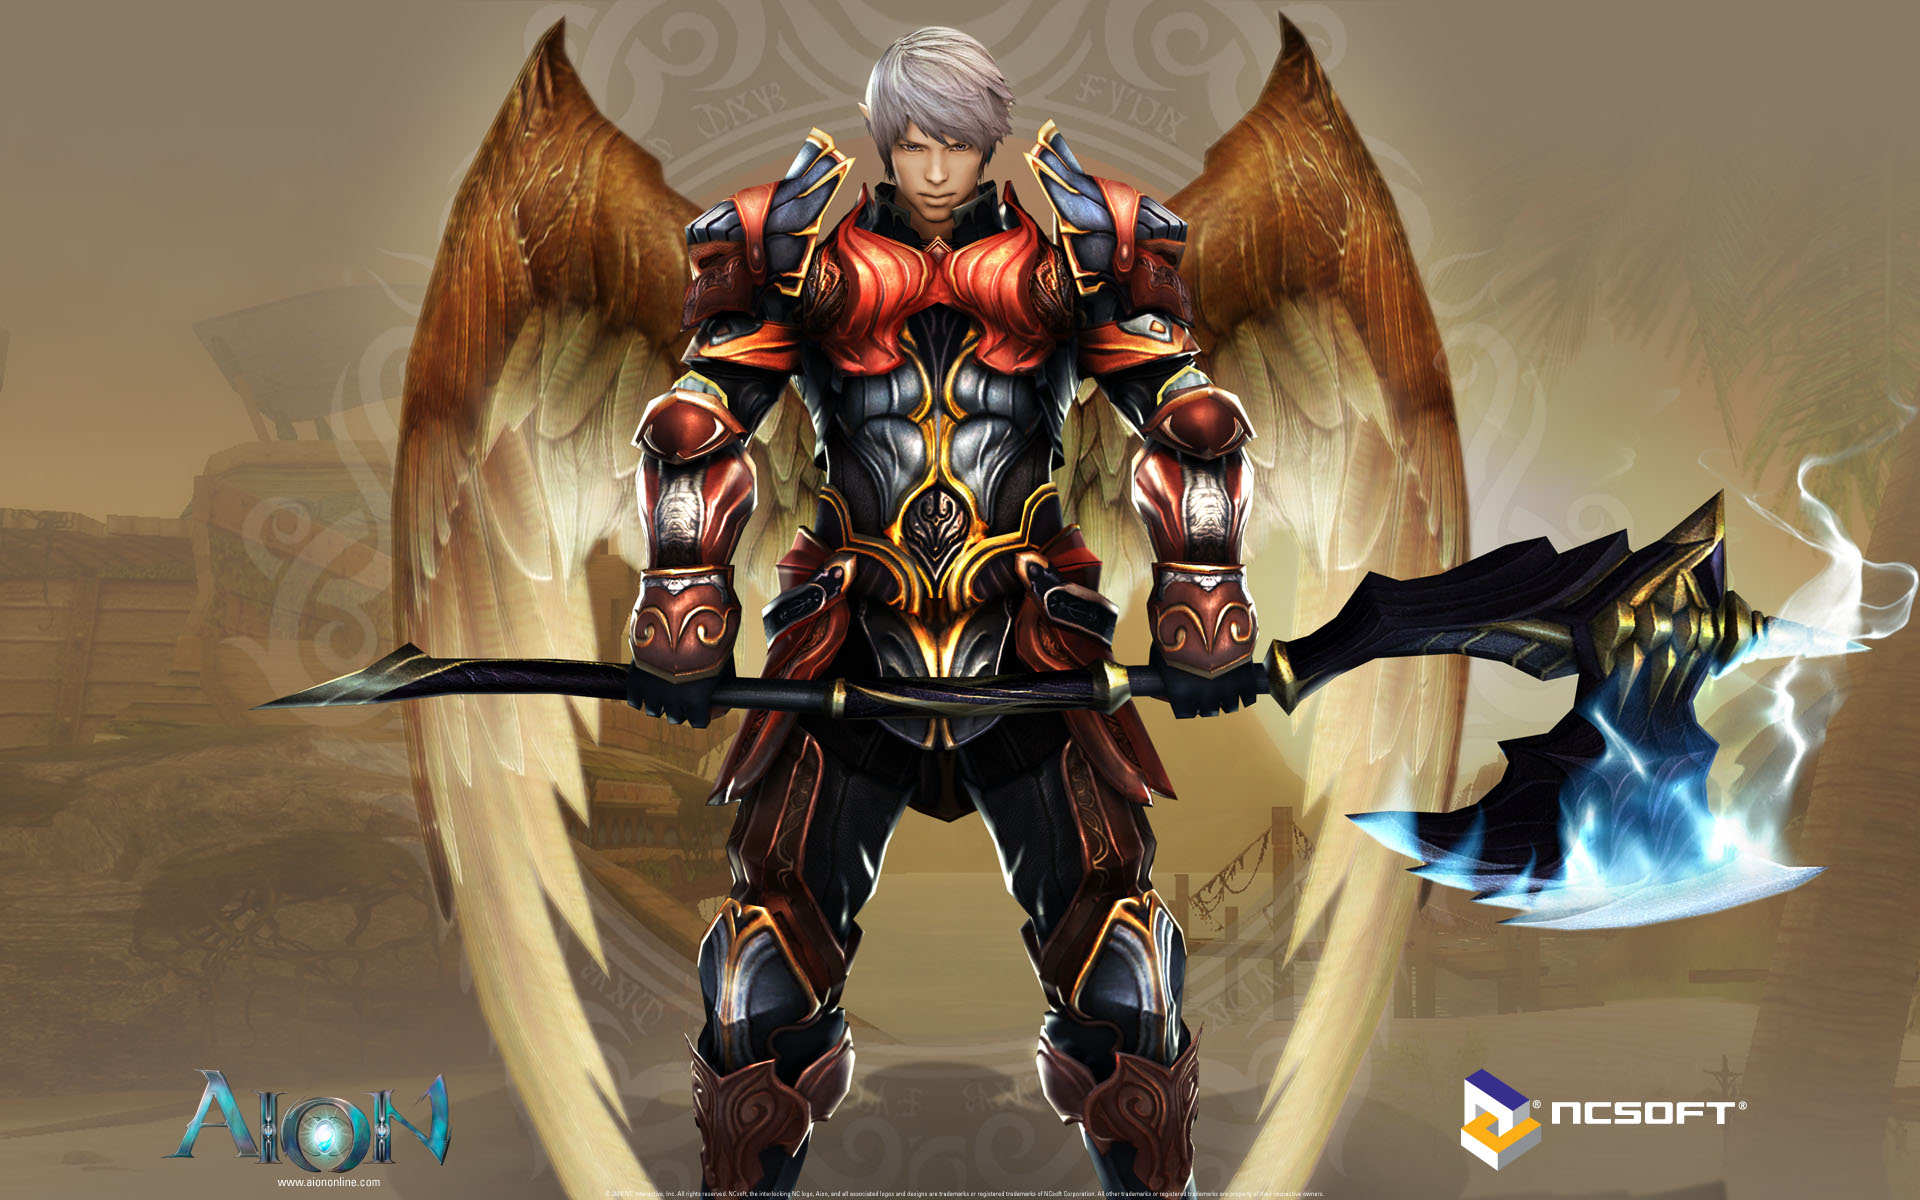 Aion Wallpaper 002 – Elyos Gladiator